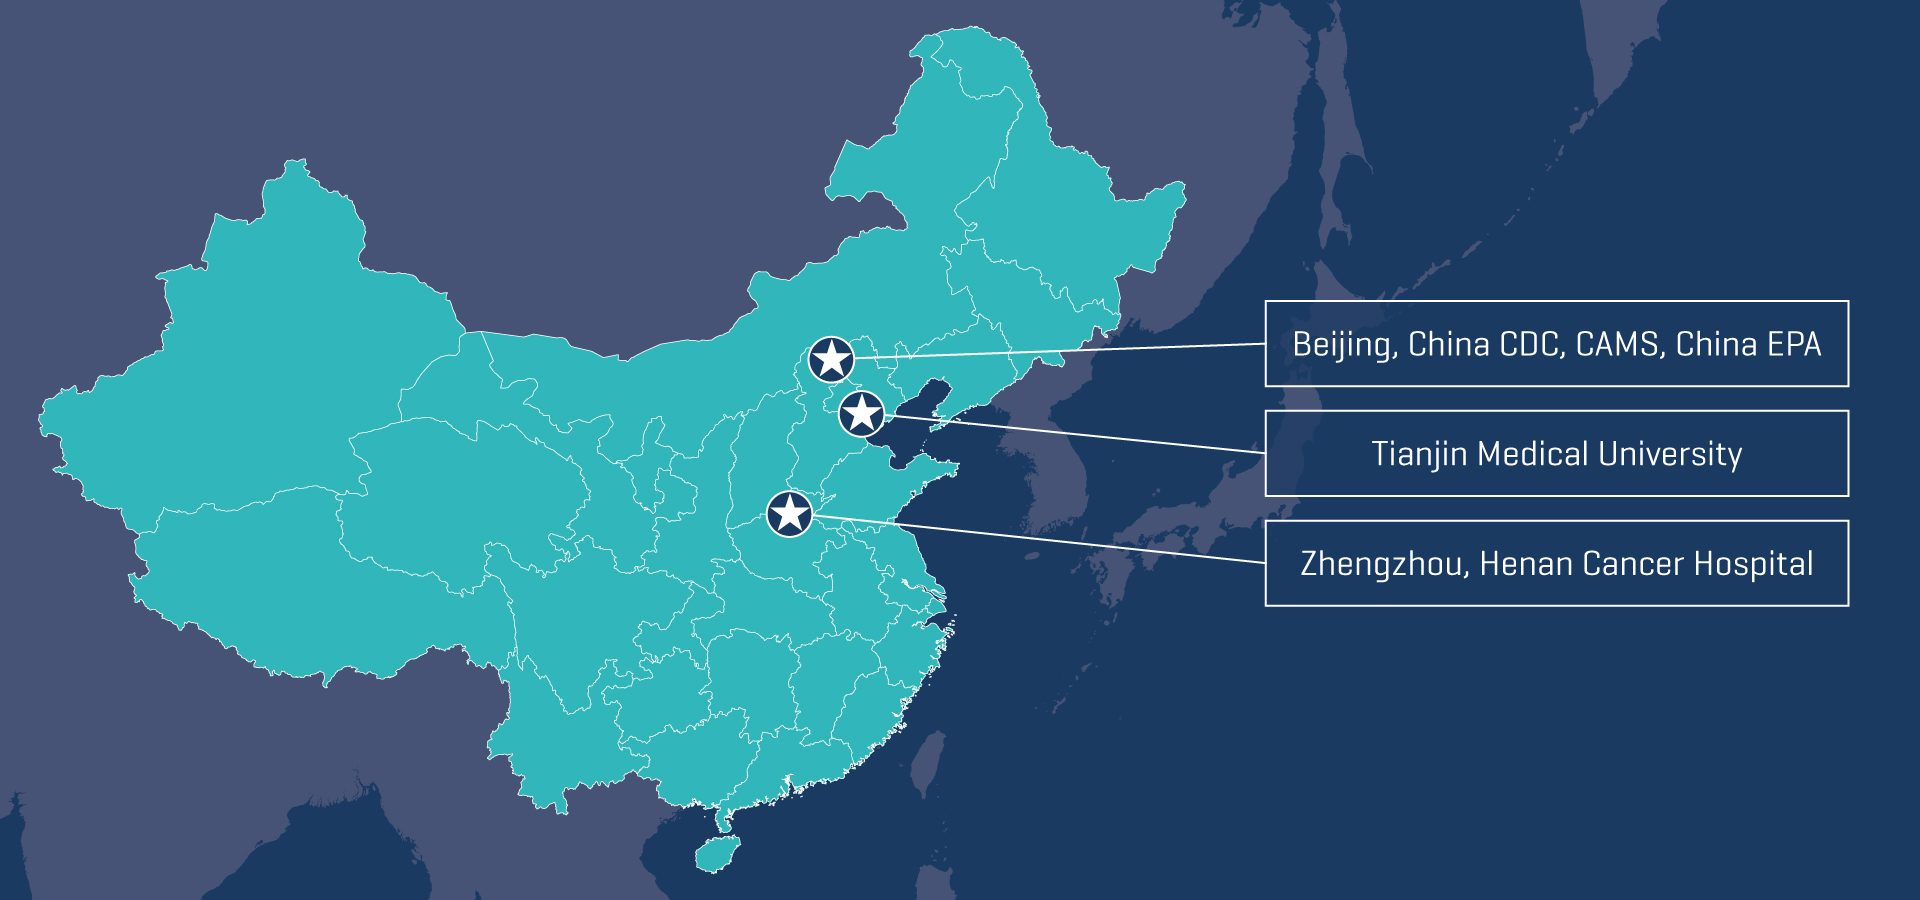 Map of China showing the locations of collaboration